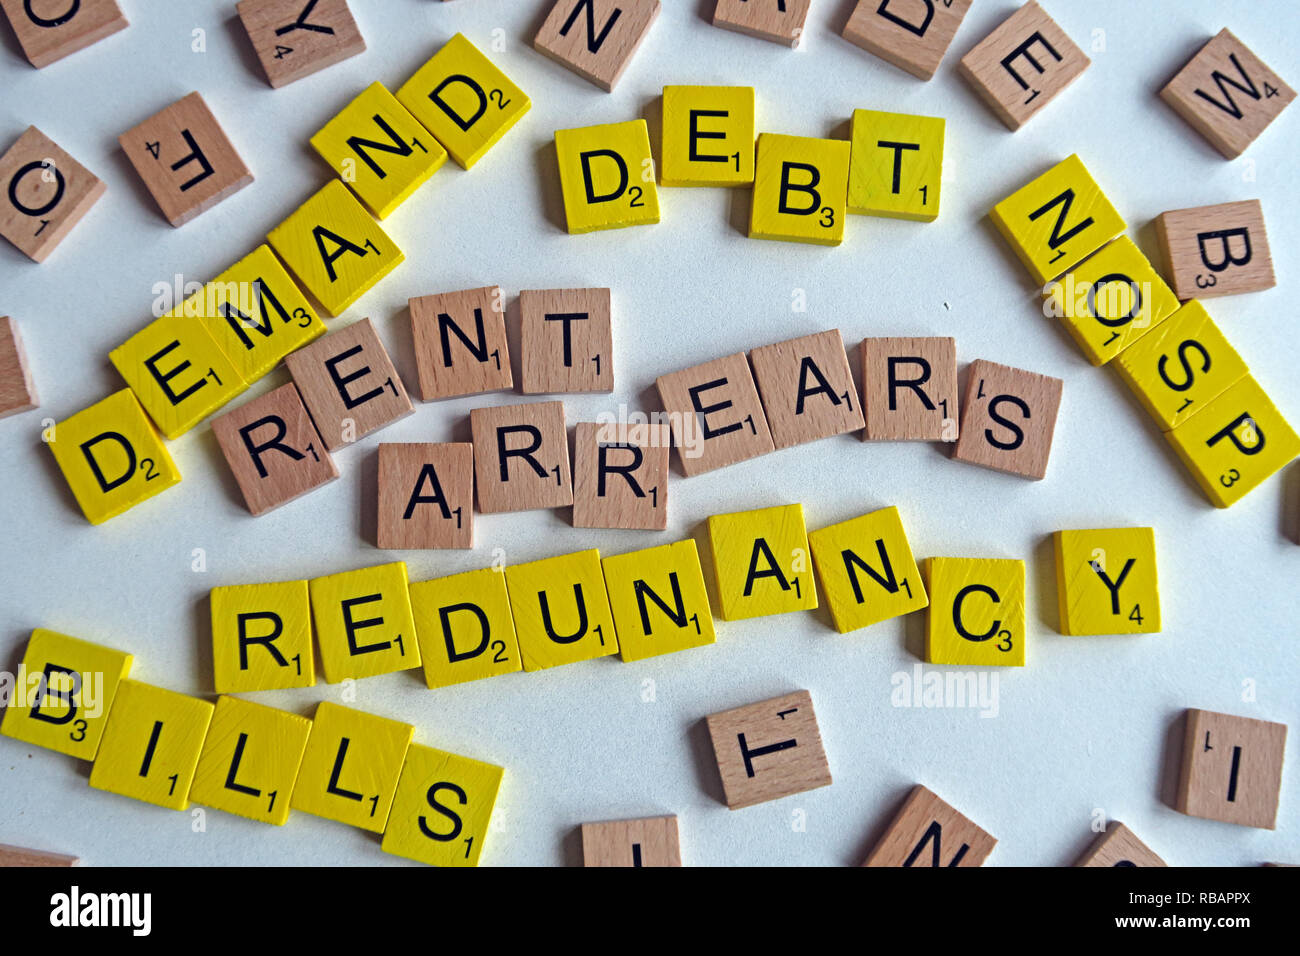 Rent Arrears, Debt, Bills, Final Demand, NOSP, CCJ, Court Action, losing job, unemployed, redundancy spelled out in letters - Stock Image